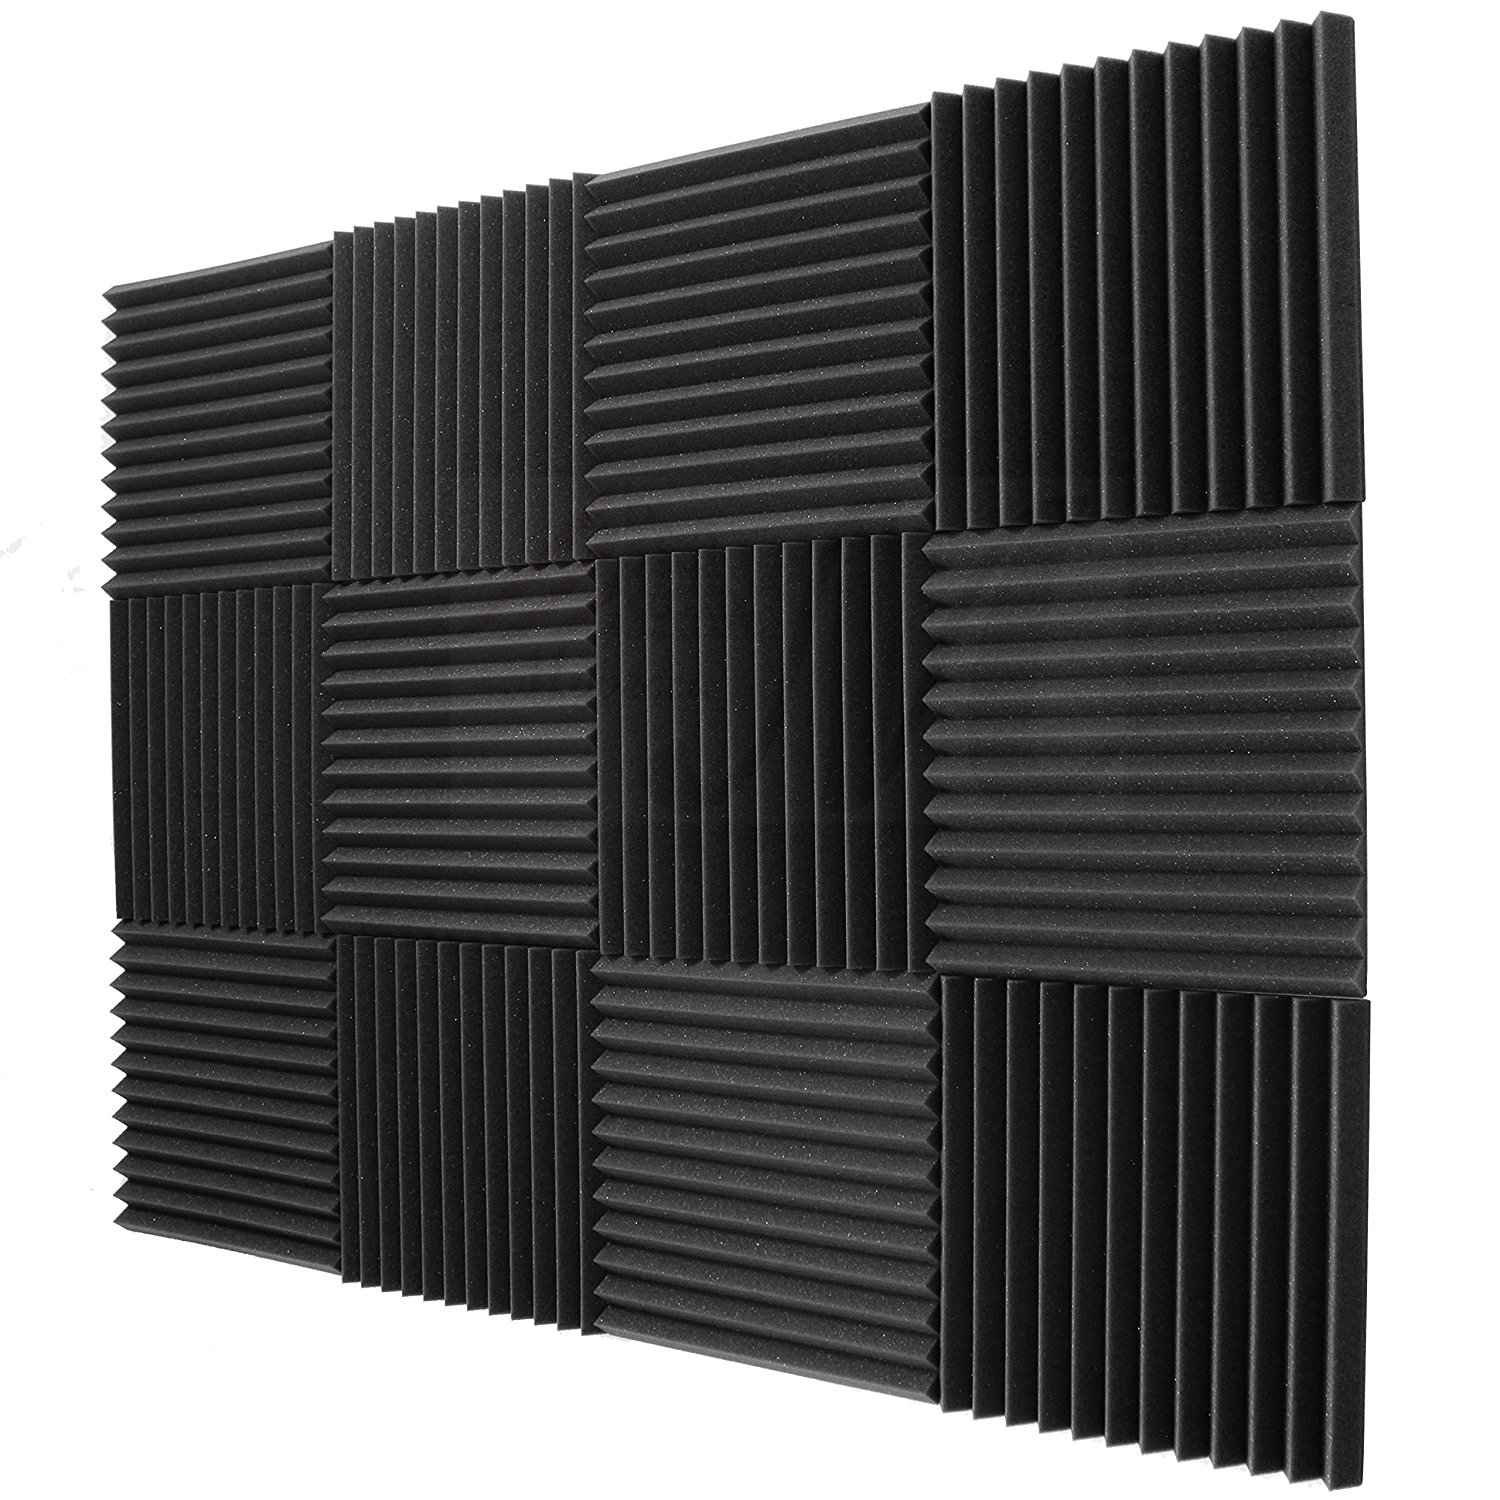 Item PANELS ACOUSTIC FOAM ACOUSTIC MAT 50x50 3M2